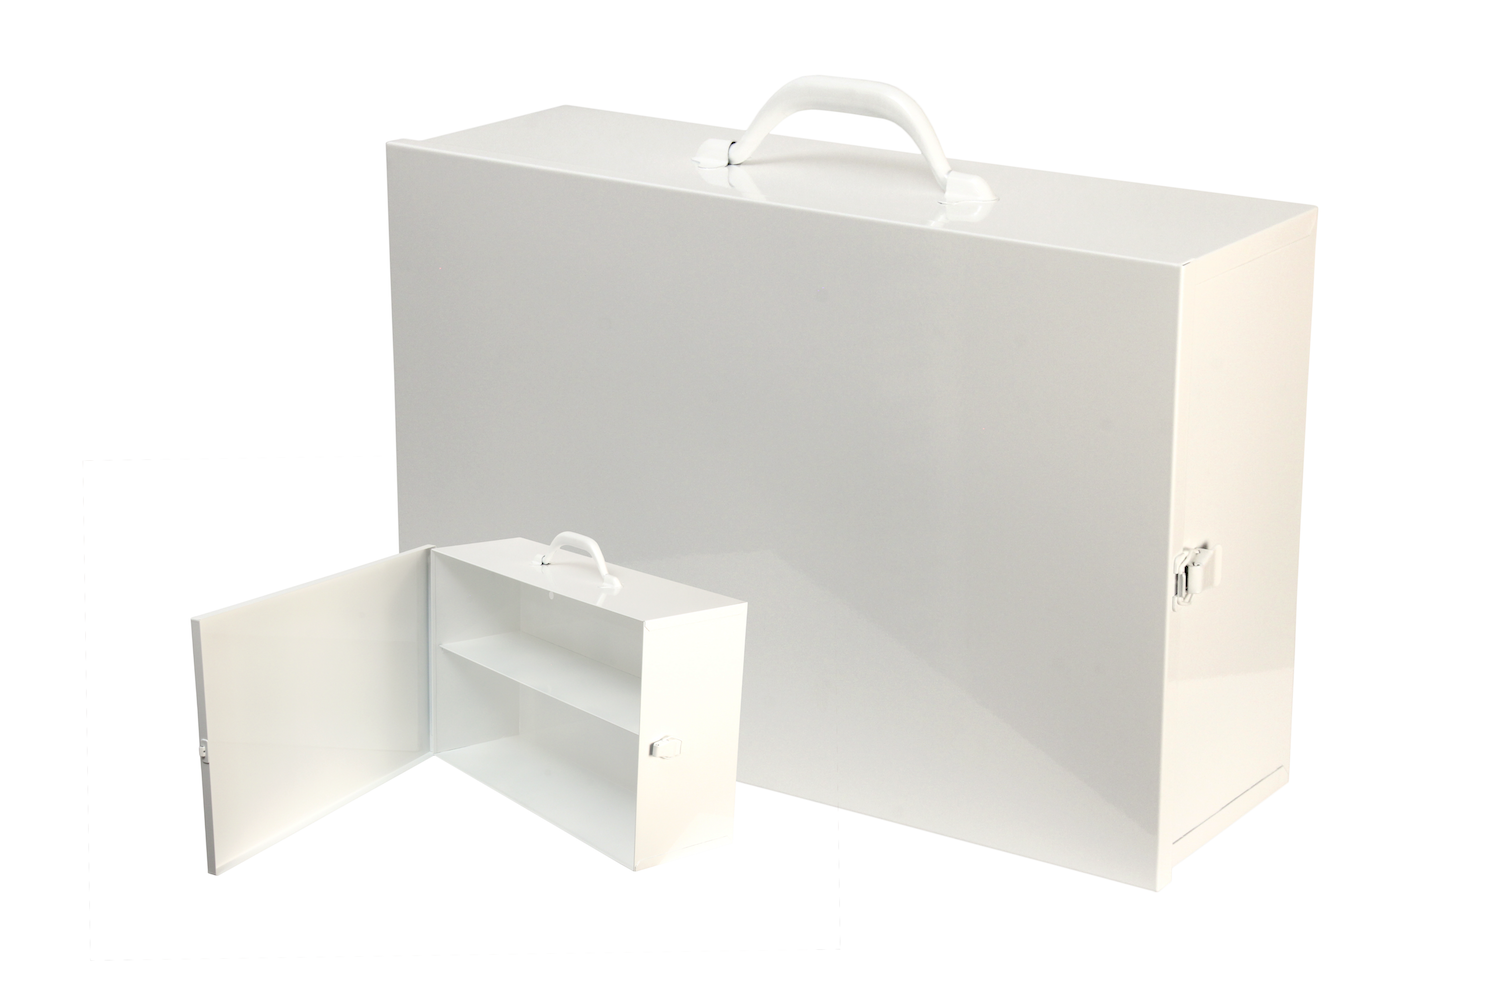 """#126 Unit First Aid Cabinet (2 Shelf) Custom Wide / Swing-out Door   Inside dimensions 18 x 12 x 5 1/2"""" Top shelf spacing 5 1/2"""" 20/22 ga steel / individual weight 9 lbs Individual carton Max QTY per 40 x 48"""" pallet—56 Gloss white powder coating"""